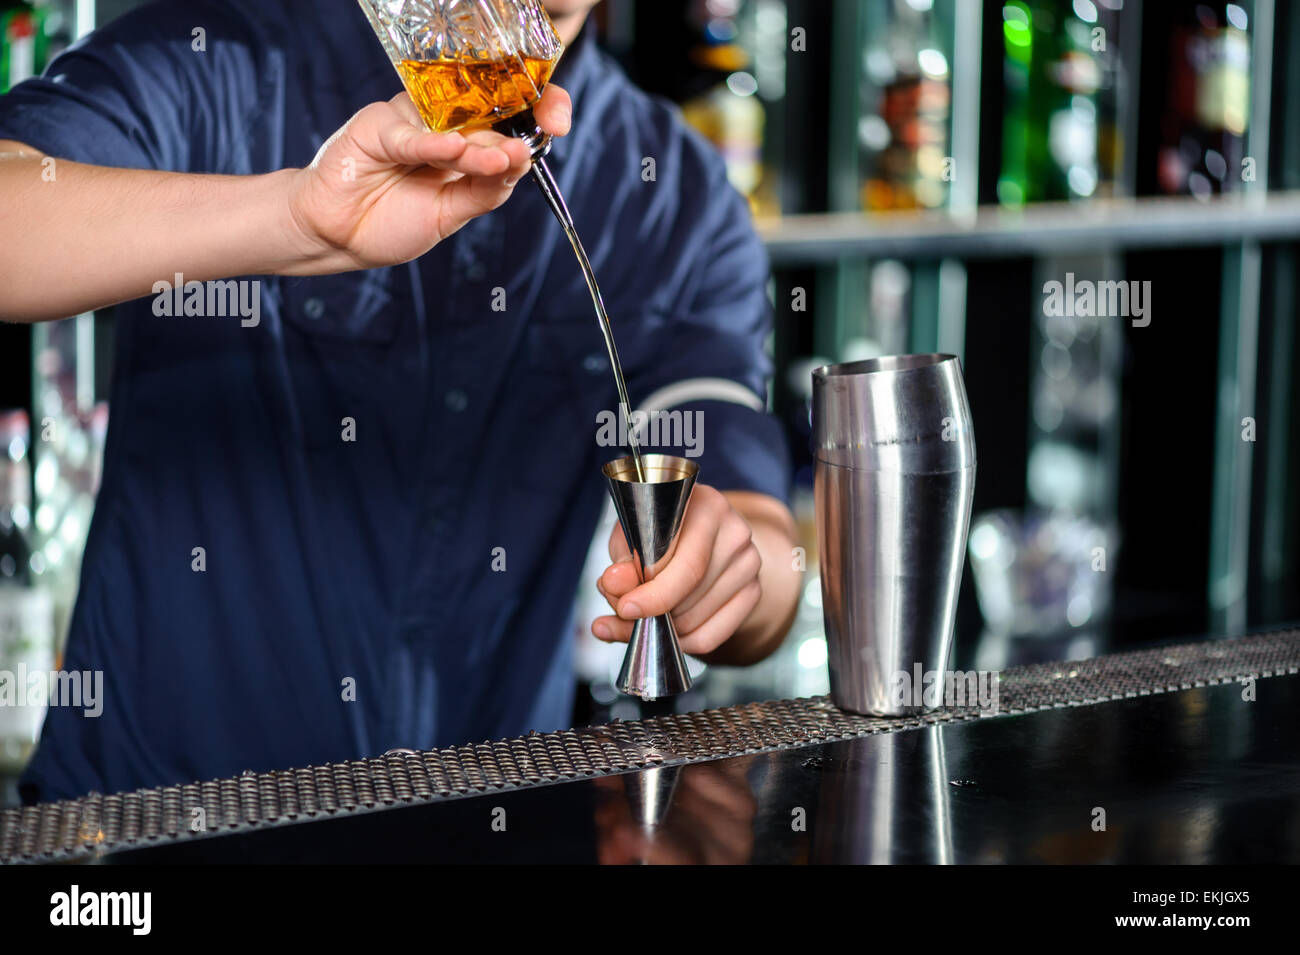 Barman makes cocktail on the counter - Stock Image